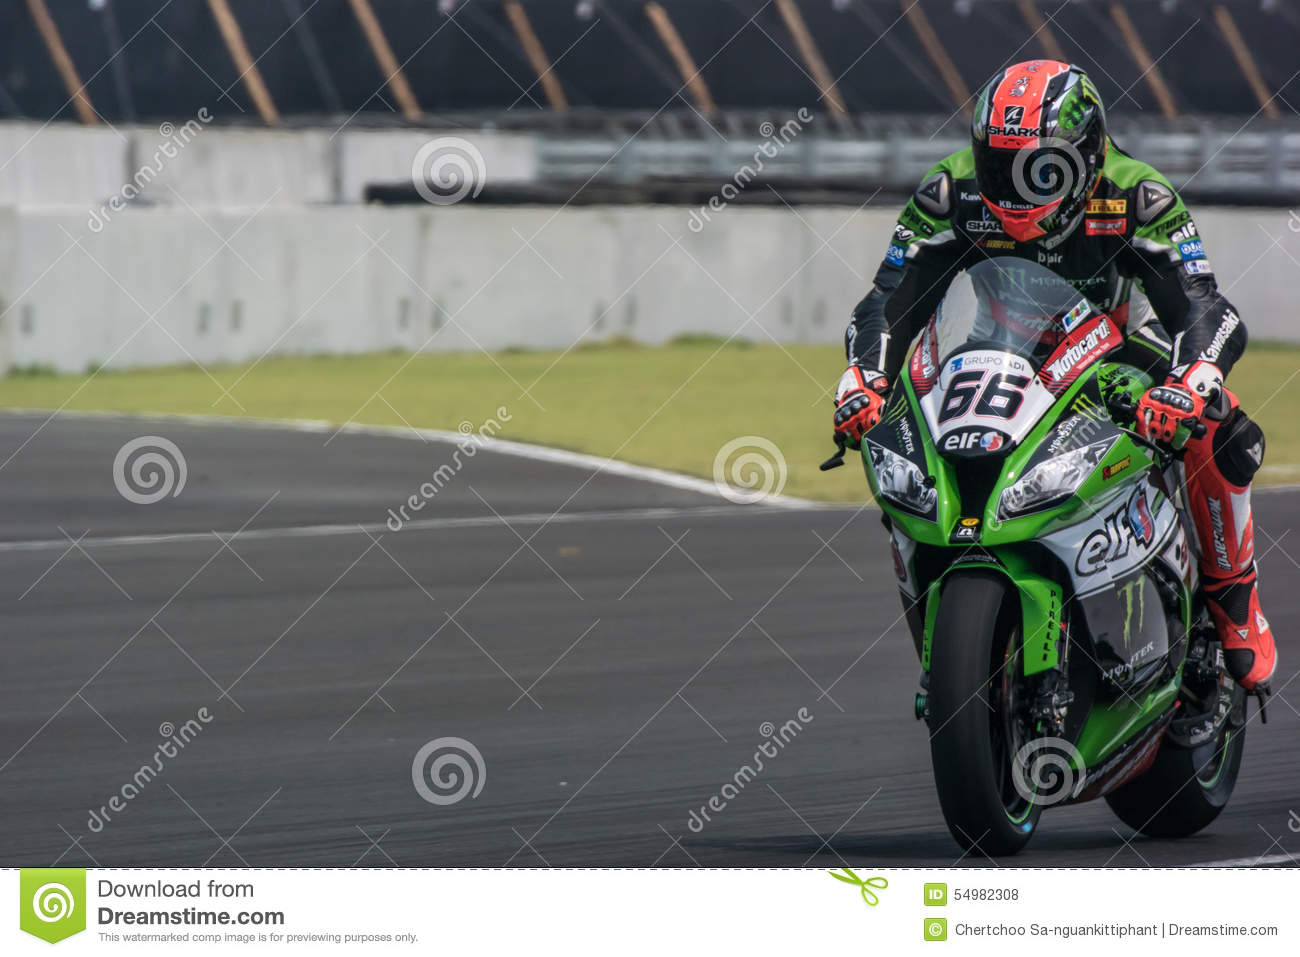 WSBK2015 - Round2 - Chang International Circuits, Buriram, Thaïlande